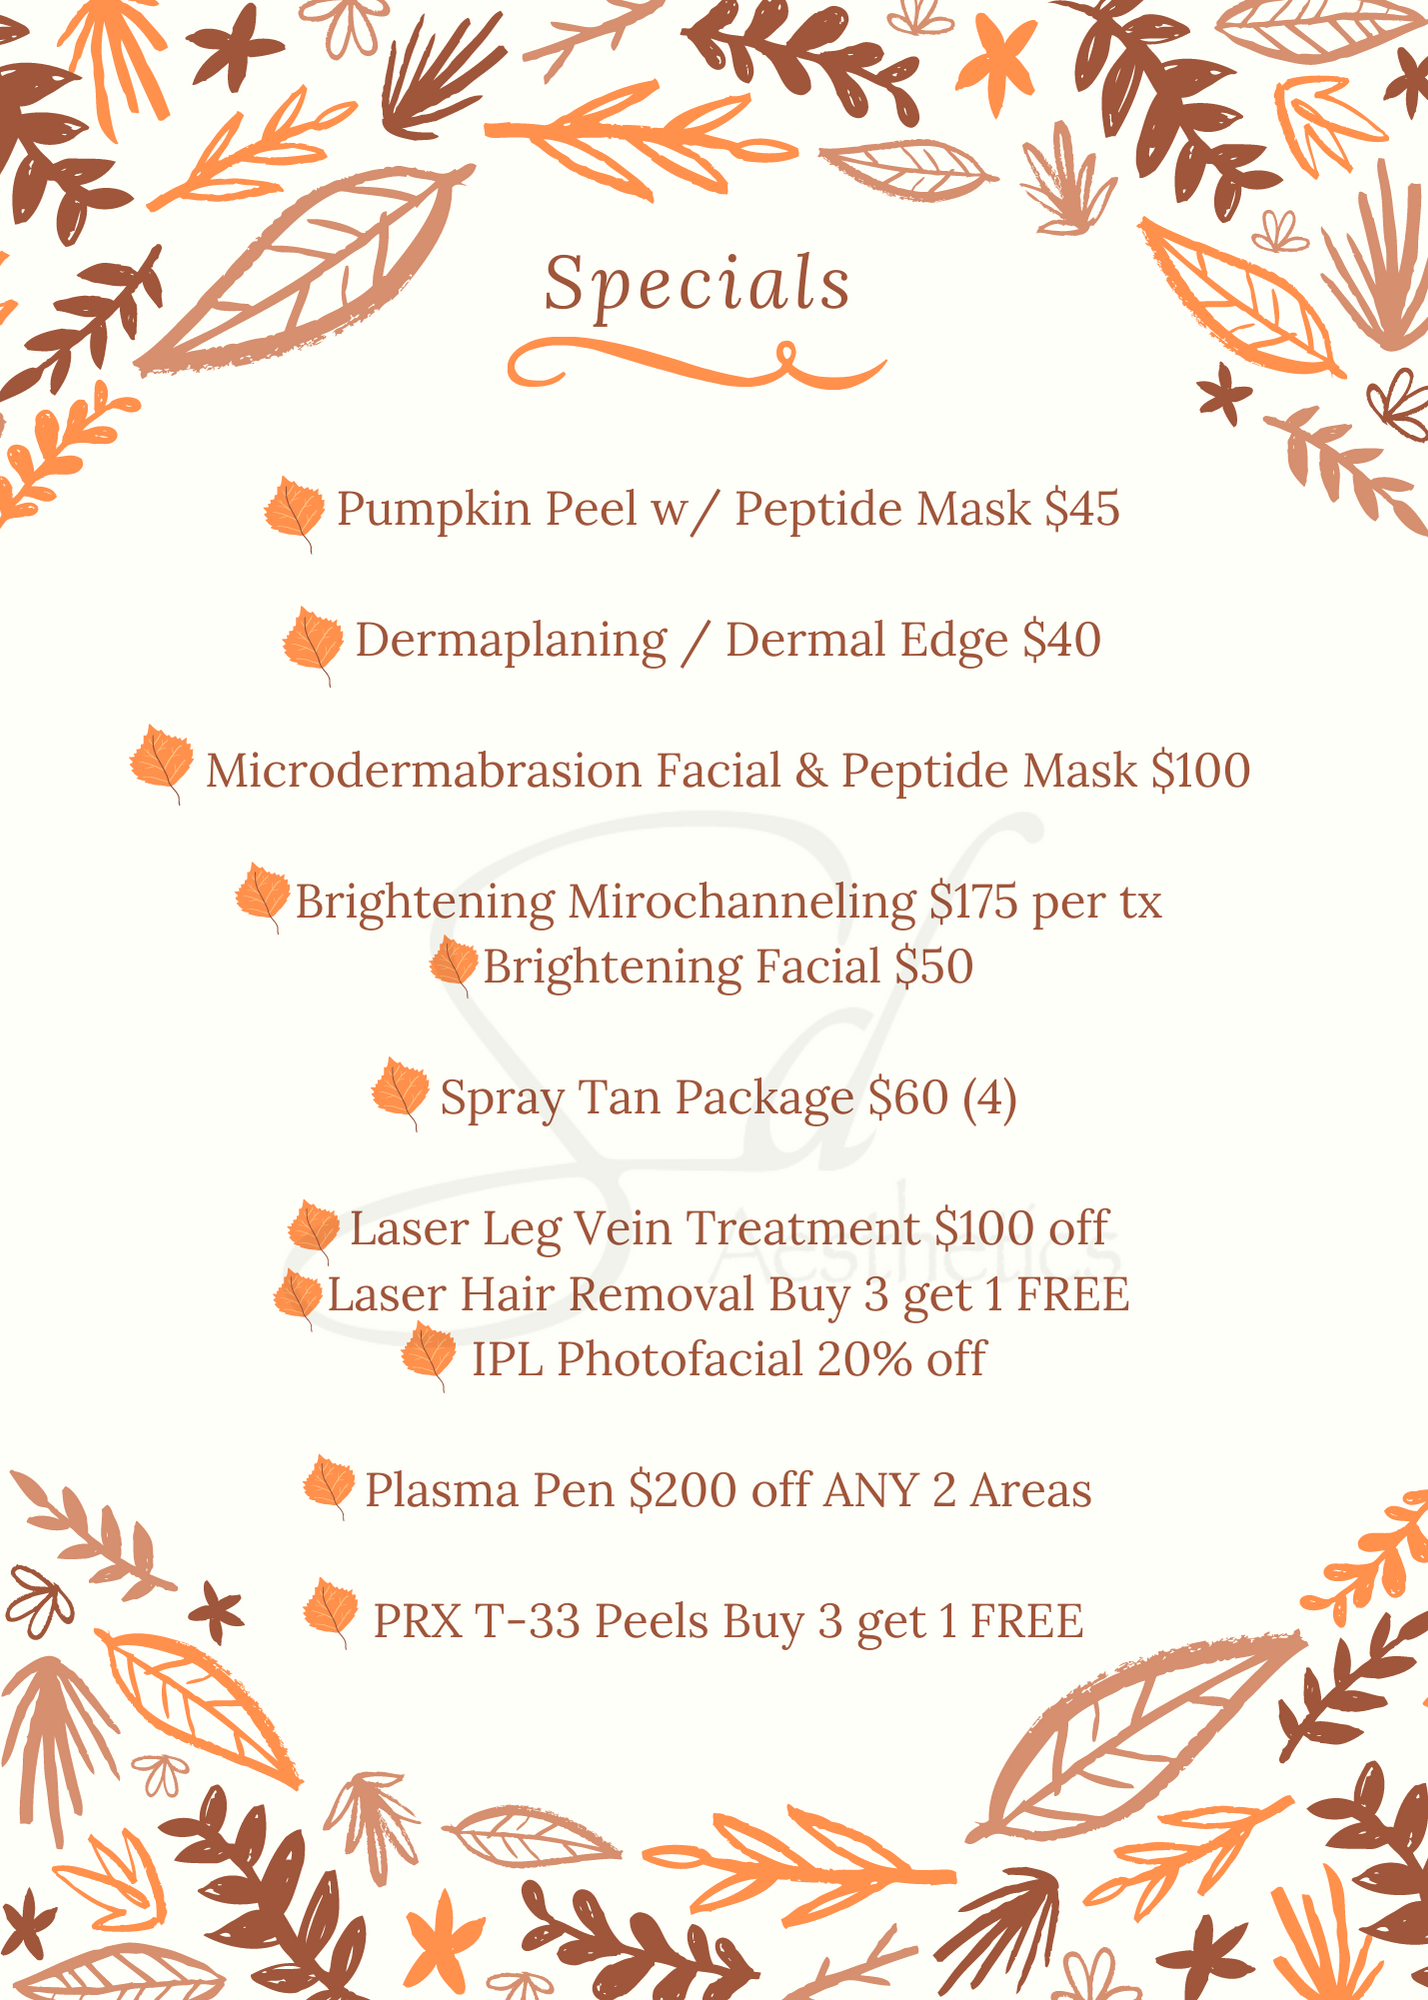 flyer for event at spa listing prices